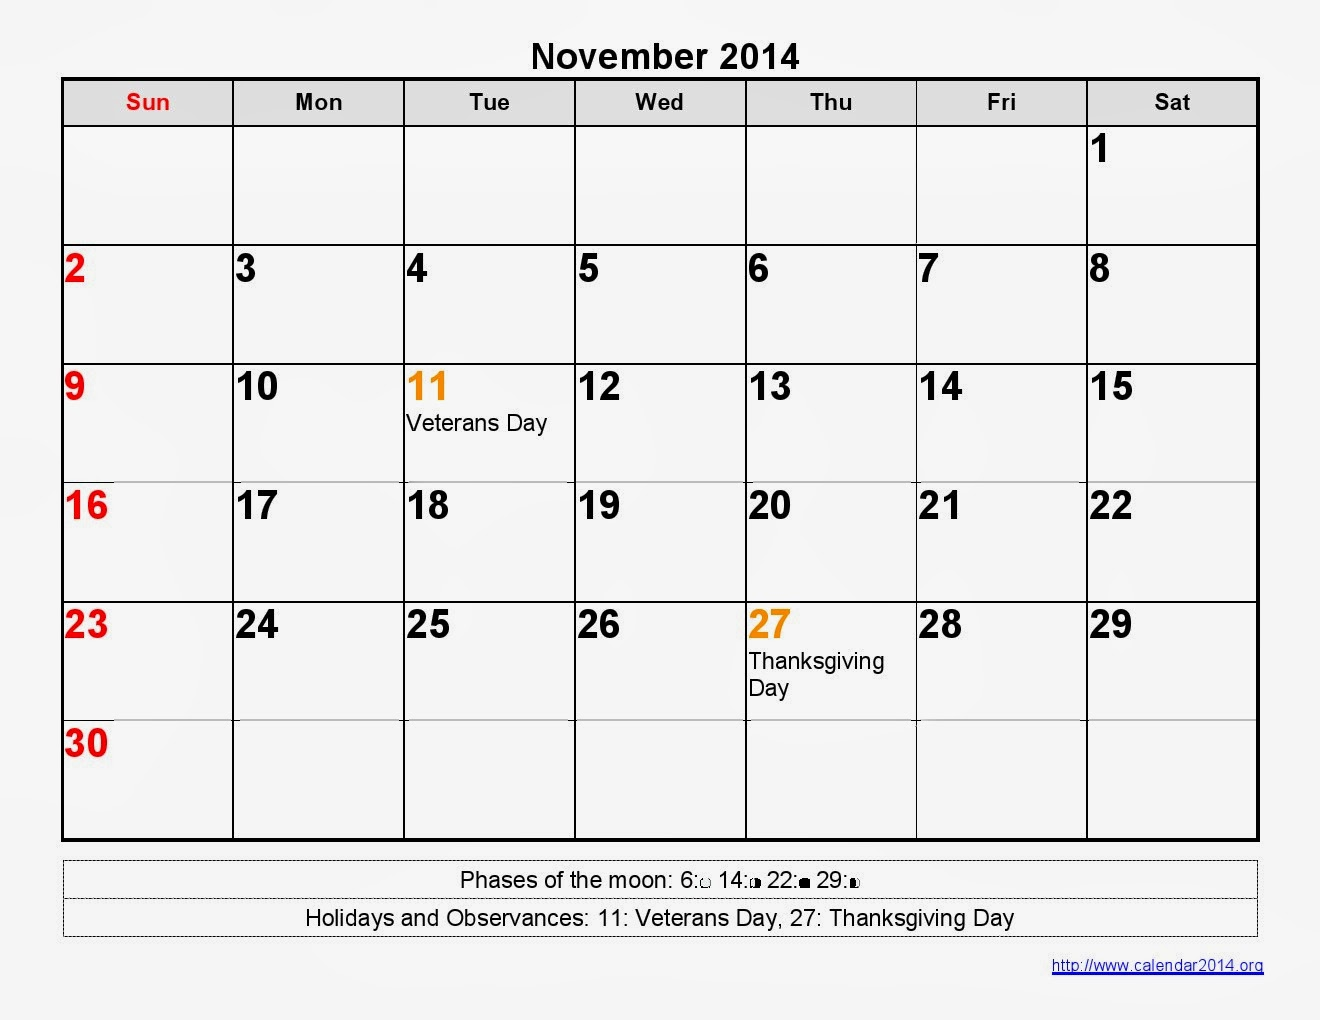 If you are looking for individual months in 201. Printable Calendar 2014 Blank Calendar 2014 Download Calendar 2014 Template Calendar 2014 Free November 2014 Calendar Printable Moon Phases